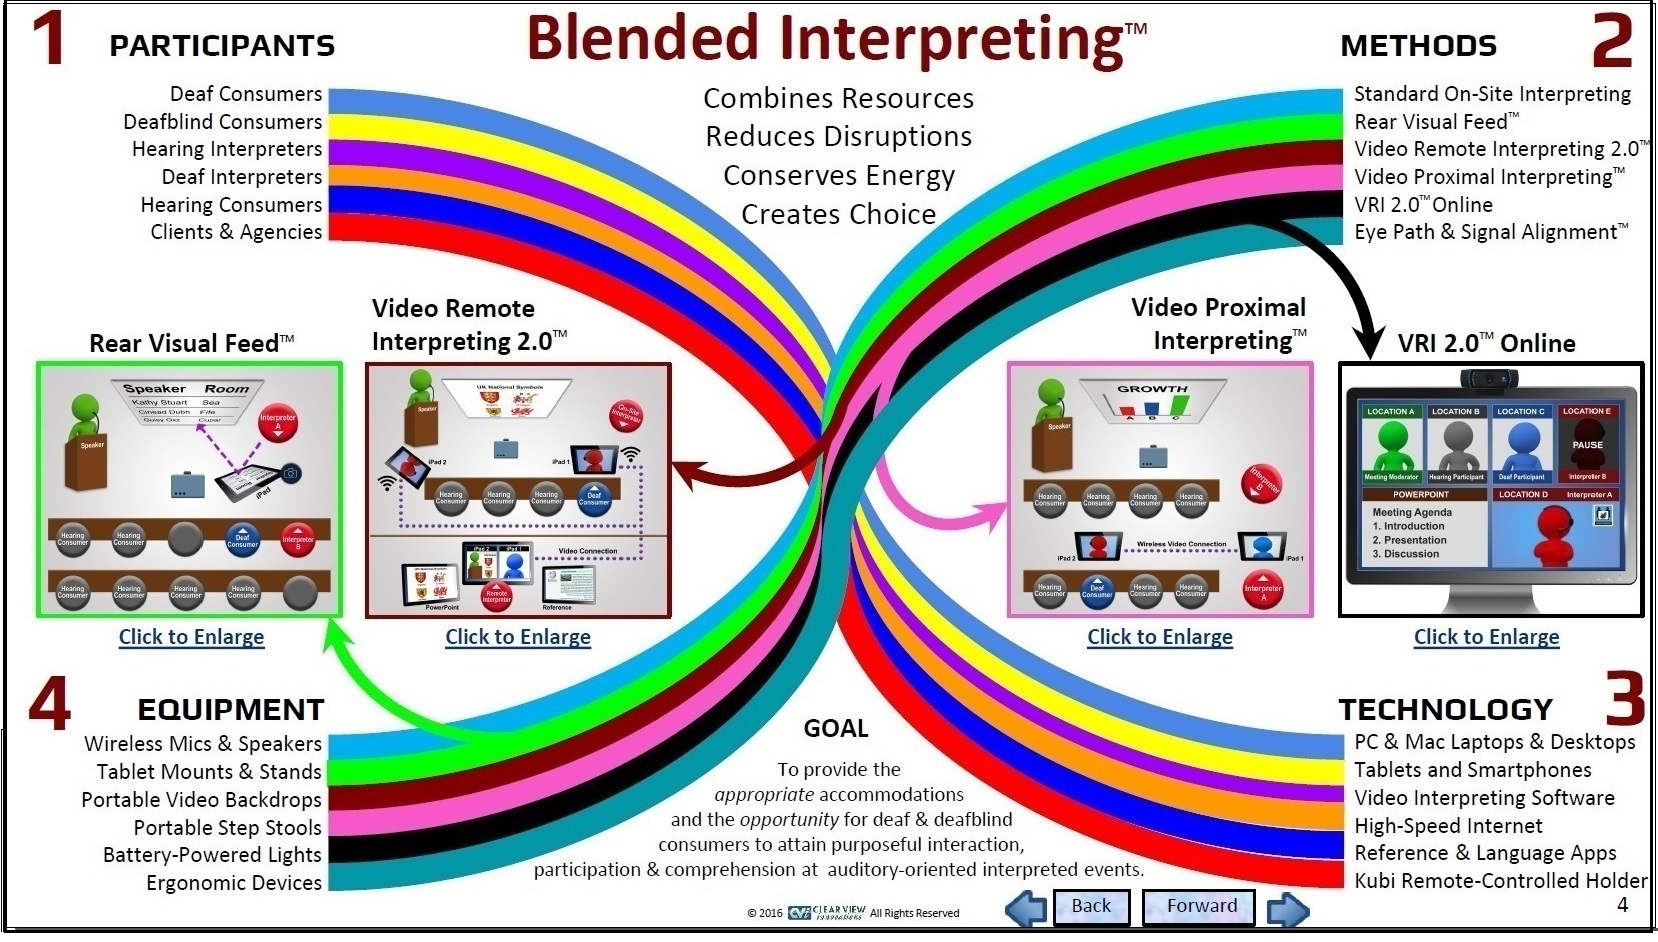 CVI Blended Interpreting